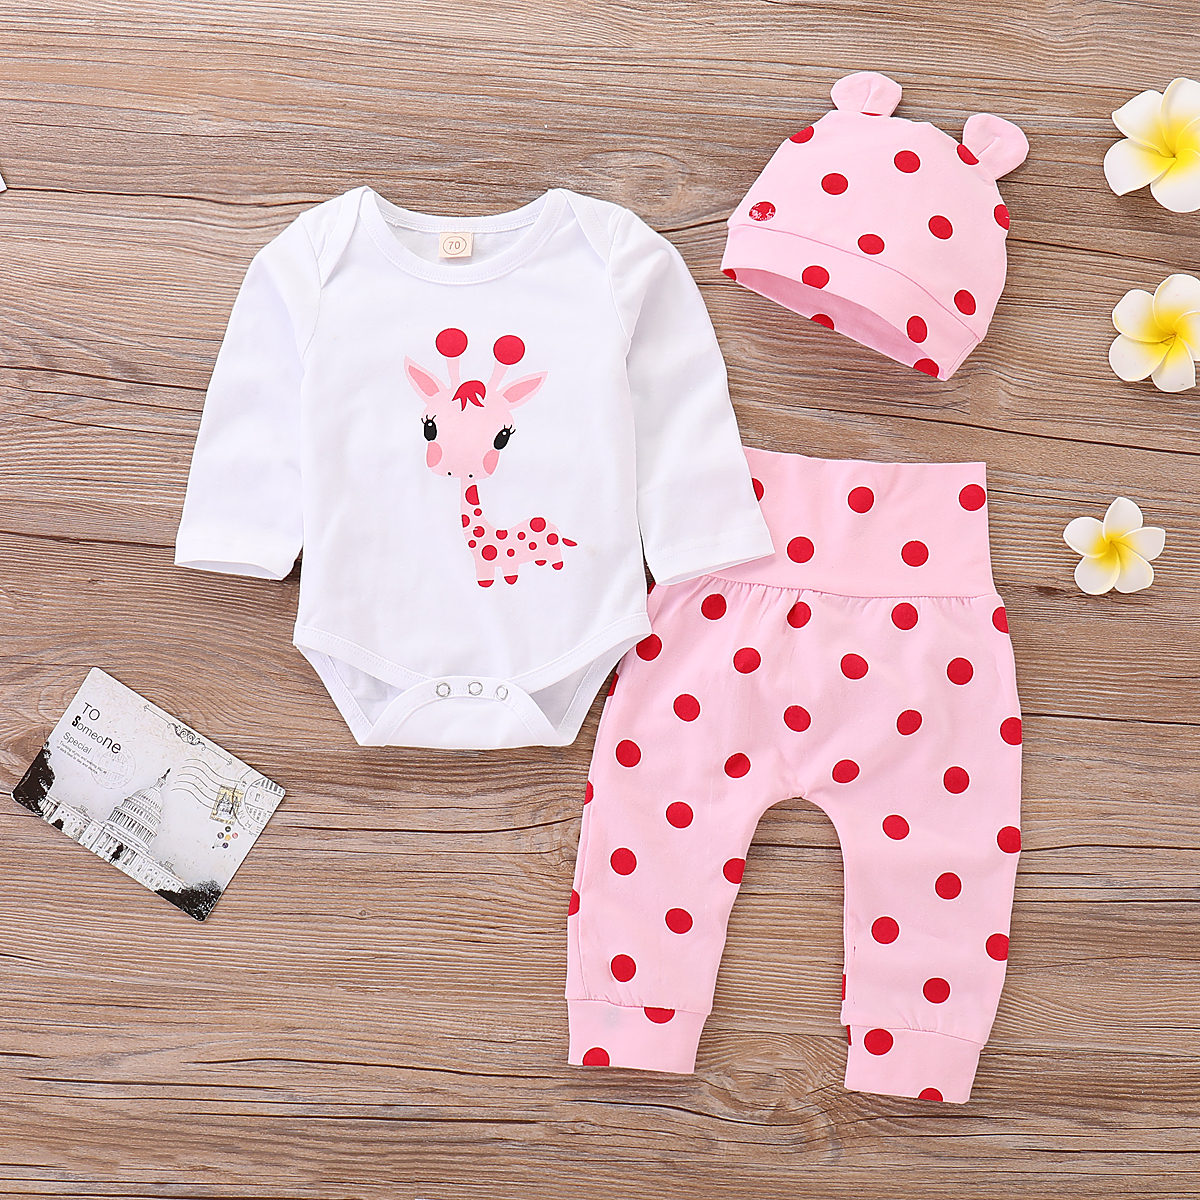 Mother & Kids Gentle Pudcoco Newest Dinosaur Baby Infant Boy Girl Long Sleeve Cotton Rompers Hooded Jumpsuits Outfits Active Kids Clothes Set 0-2t Special Summer Sale